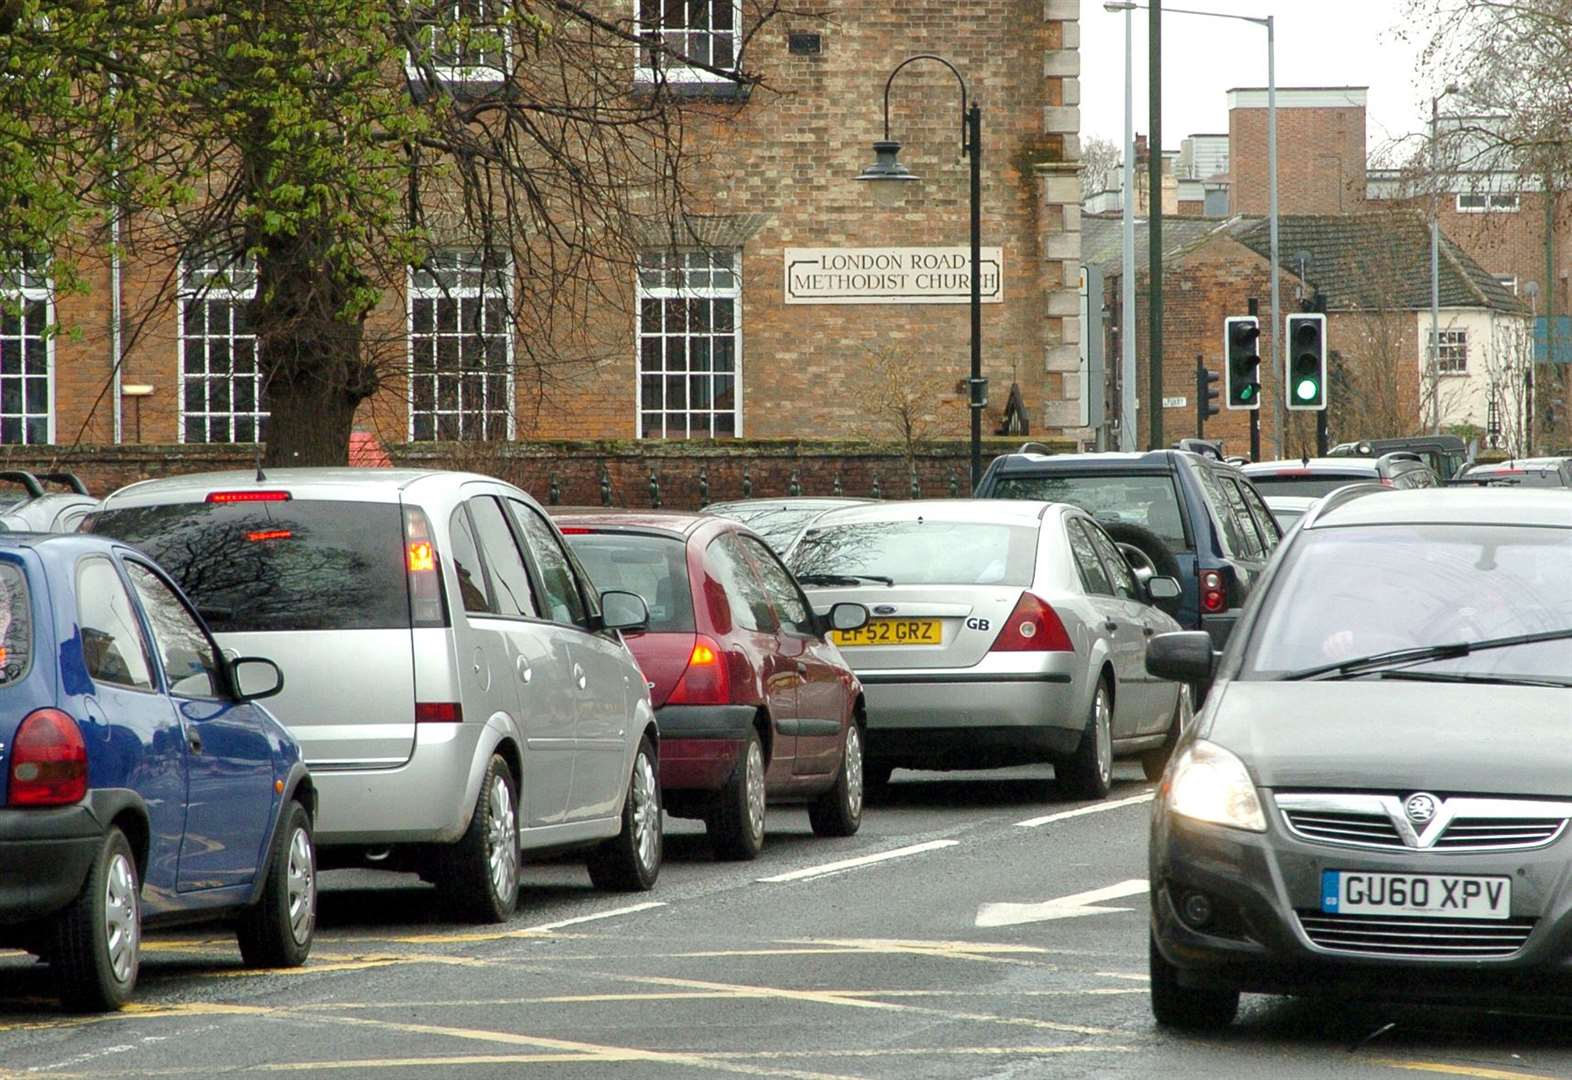 Park-and-ride to be considered for King's Lynn as part of Transport Study